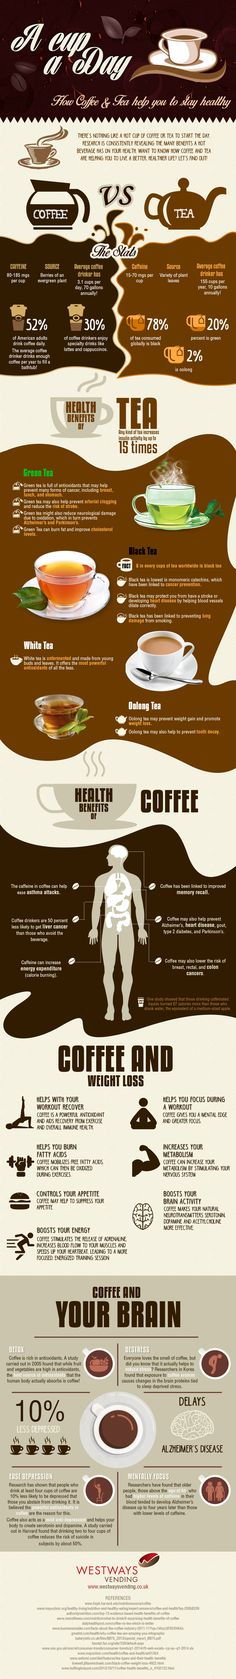 How Coffee And Tea Make You Healthier